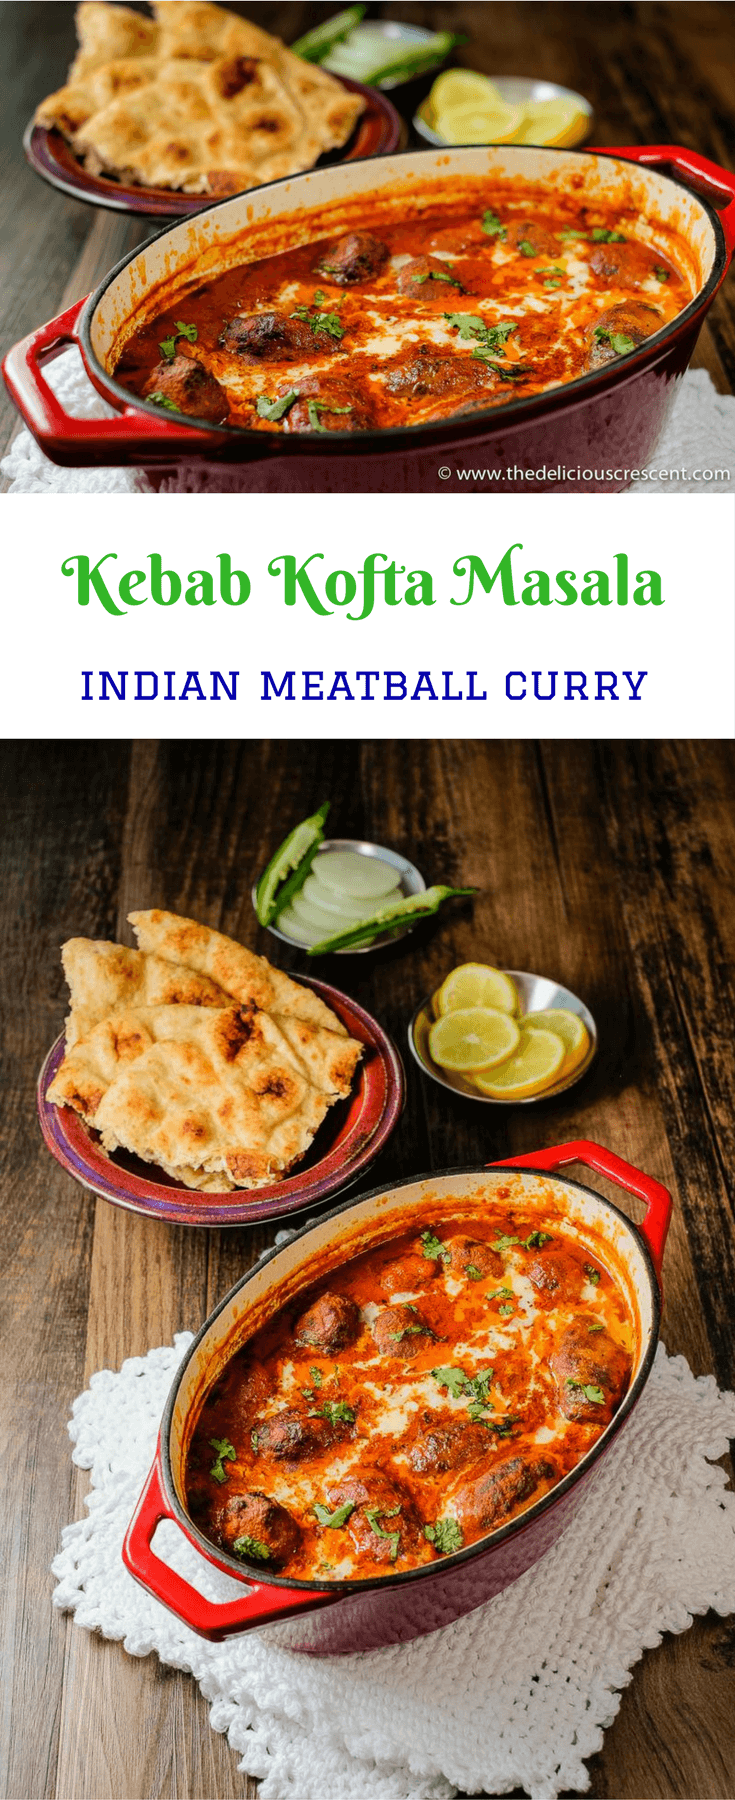 A collage of picures taken of Kebab Kofta Masala, which is a delicious Indian dish of succulent grilled or broiled meatballs in a rich, creamy and spicy gravy.